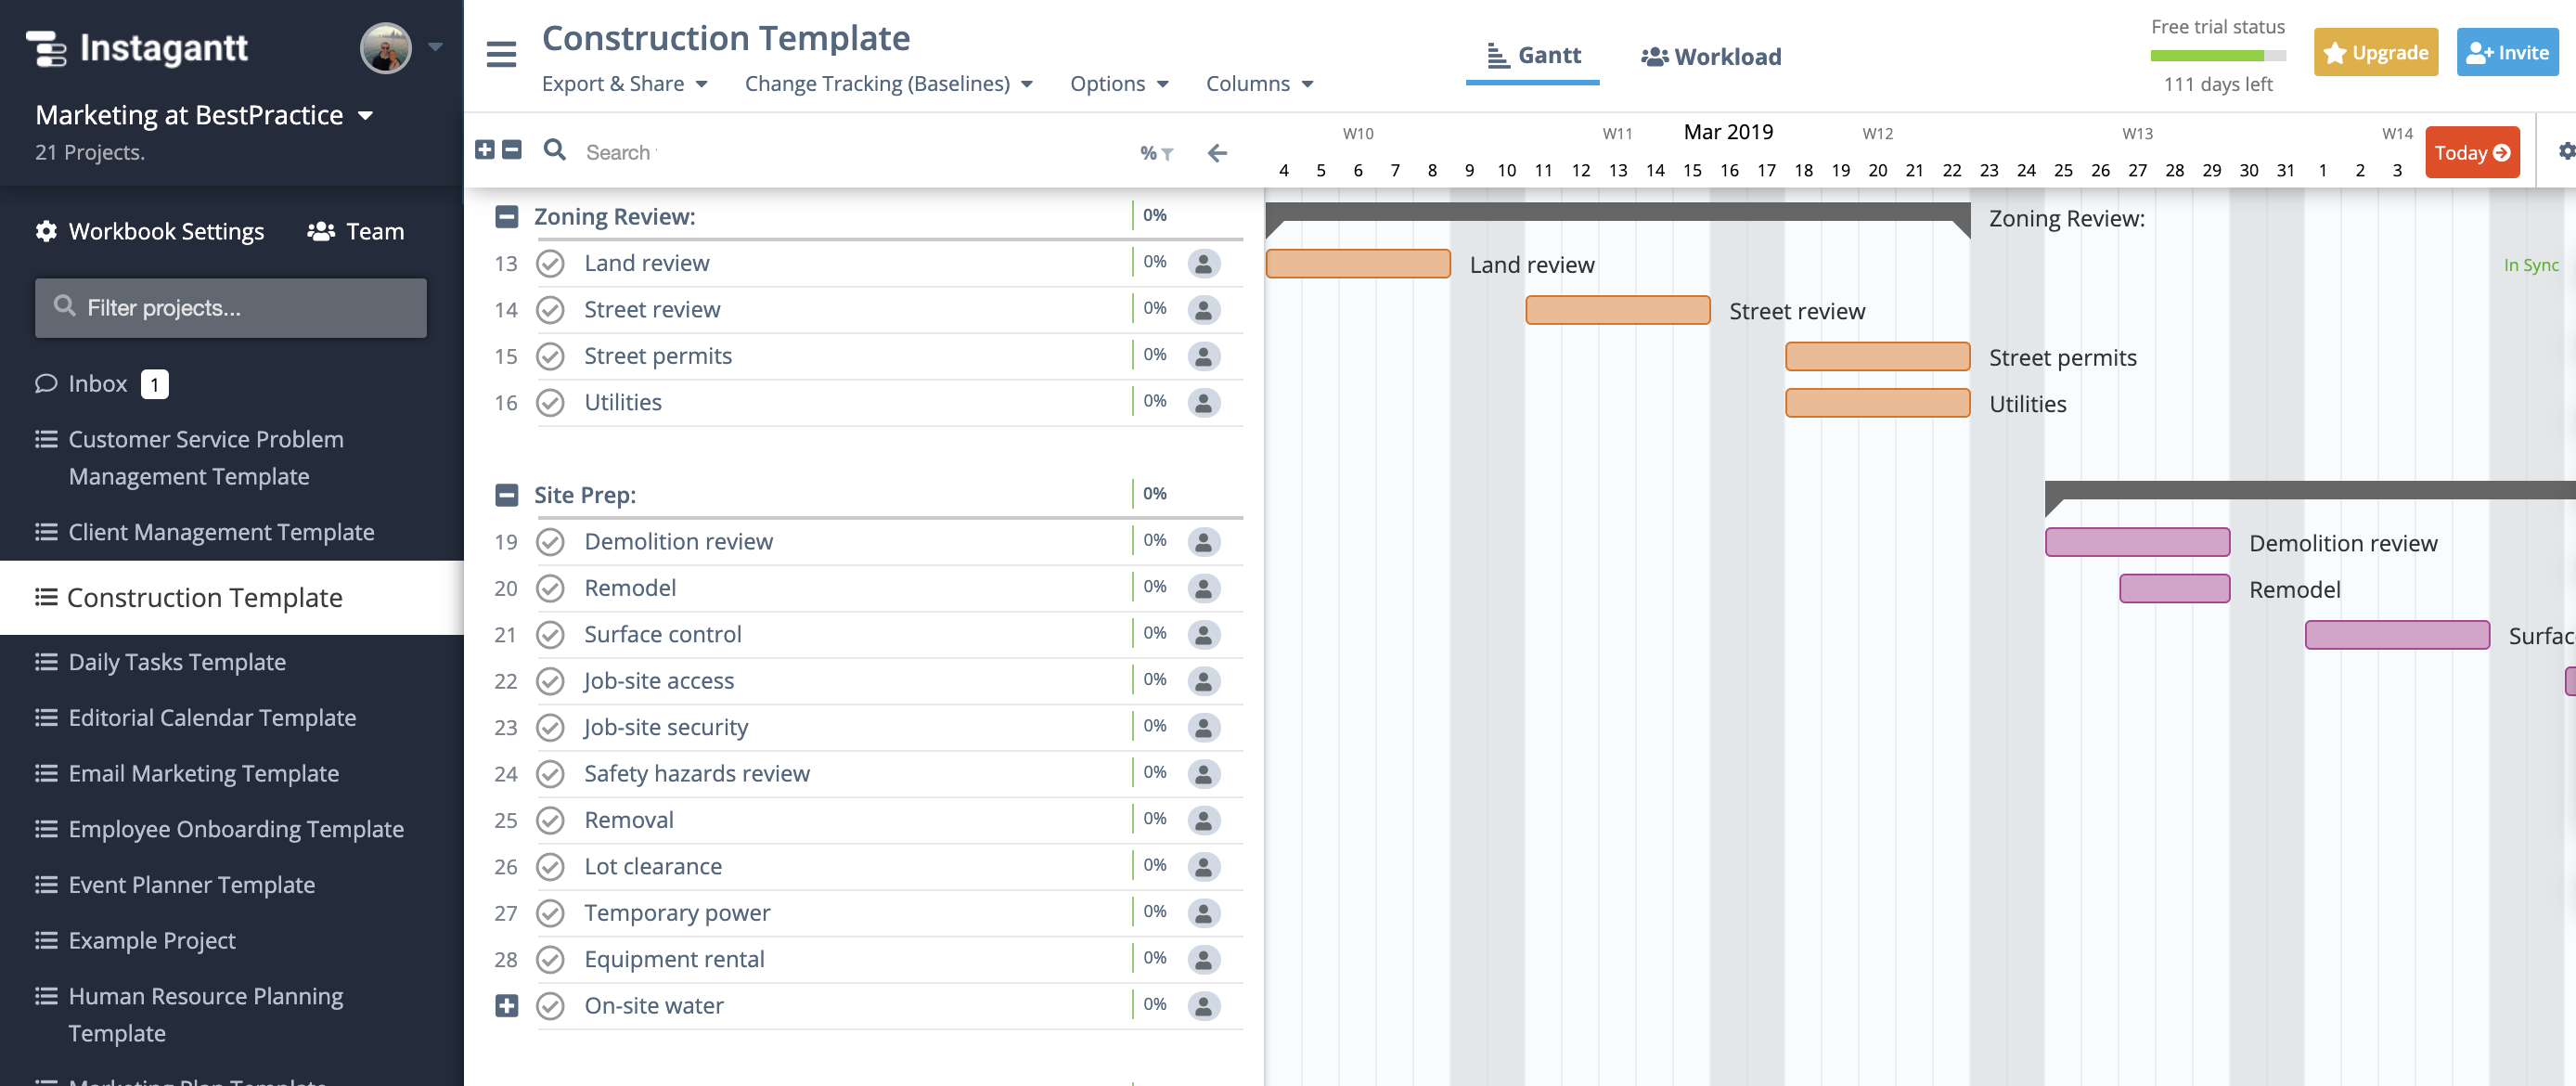 Construction Template Gantt Chart Example